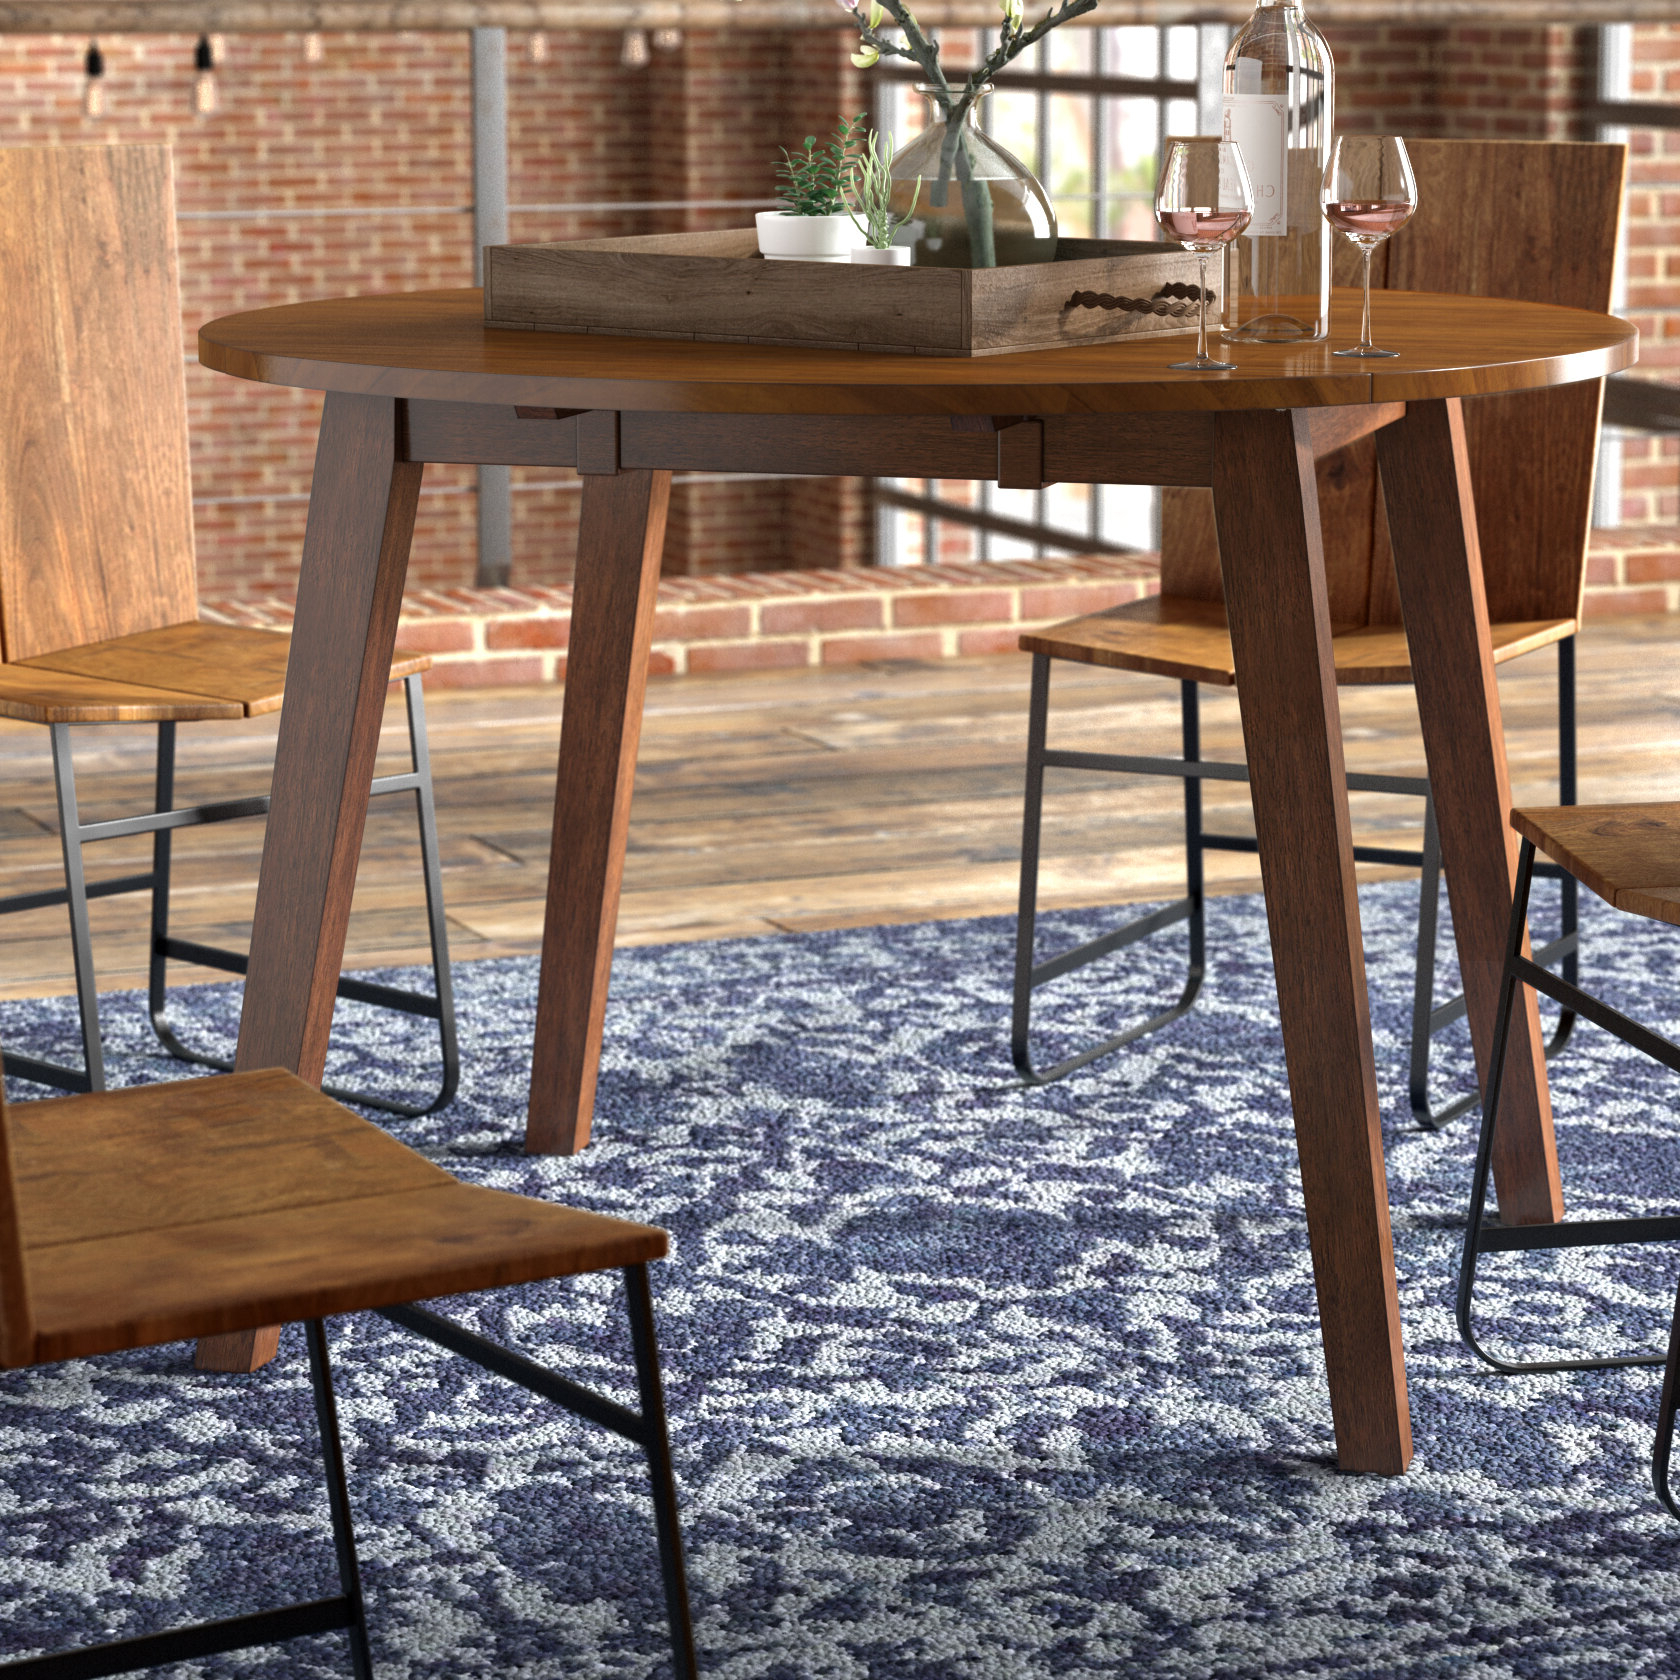 2019 Trent Austin Design Caracara Round Dropleaf Extendable With Transitional 4 Seating Double Drop Leaf Casual Dining Tables (View 20 of 25)